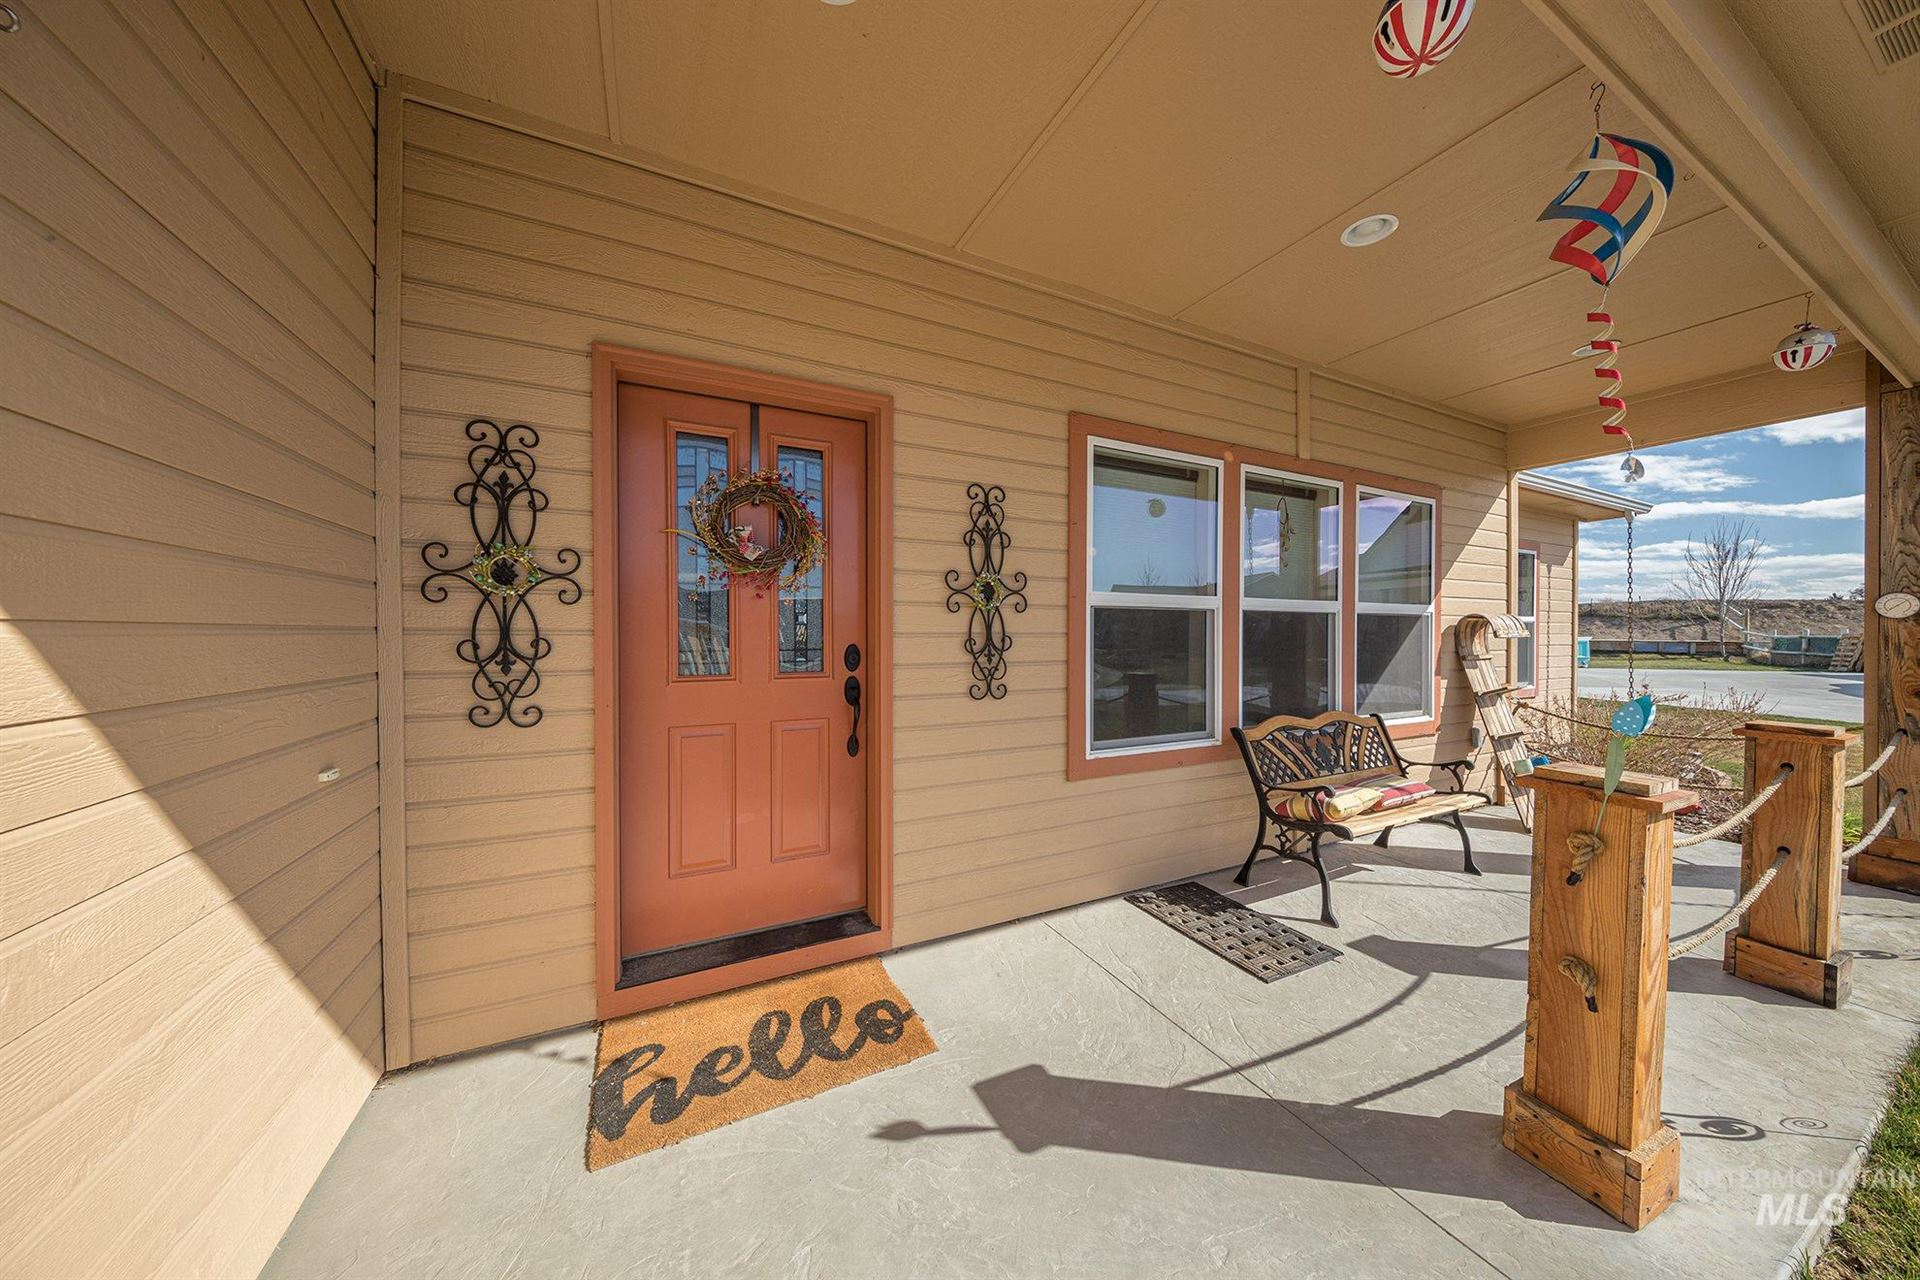 Photo of 514 S Saxton, New Plymouth, ID 83655 (MLS # 98799137)